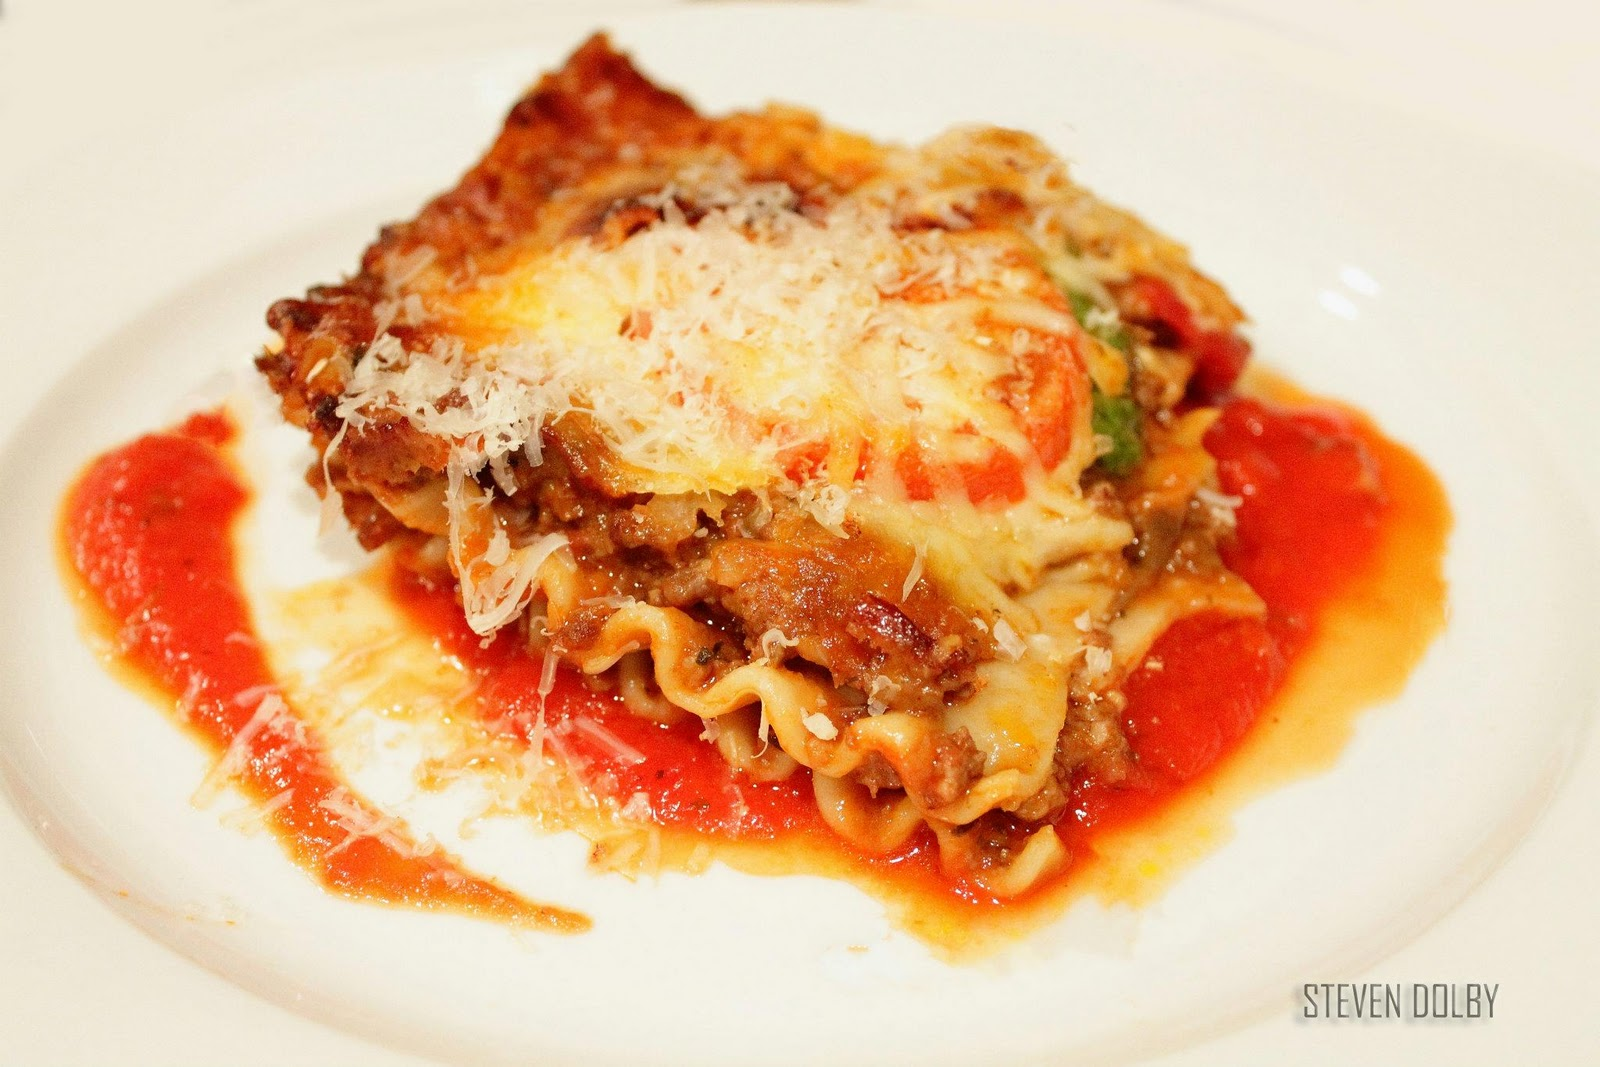 Steve's Cooking: Rustic lasagne alla Bolognese by Steven Dolby